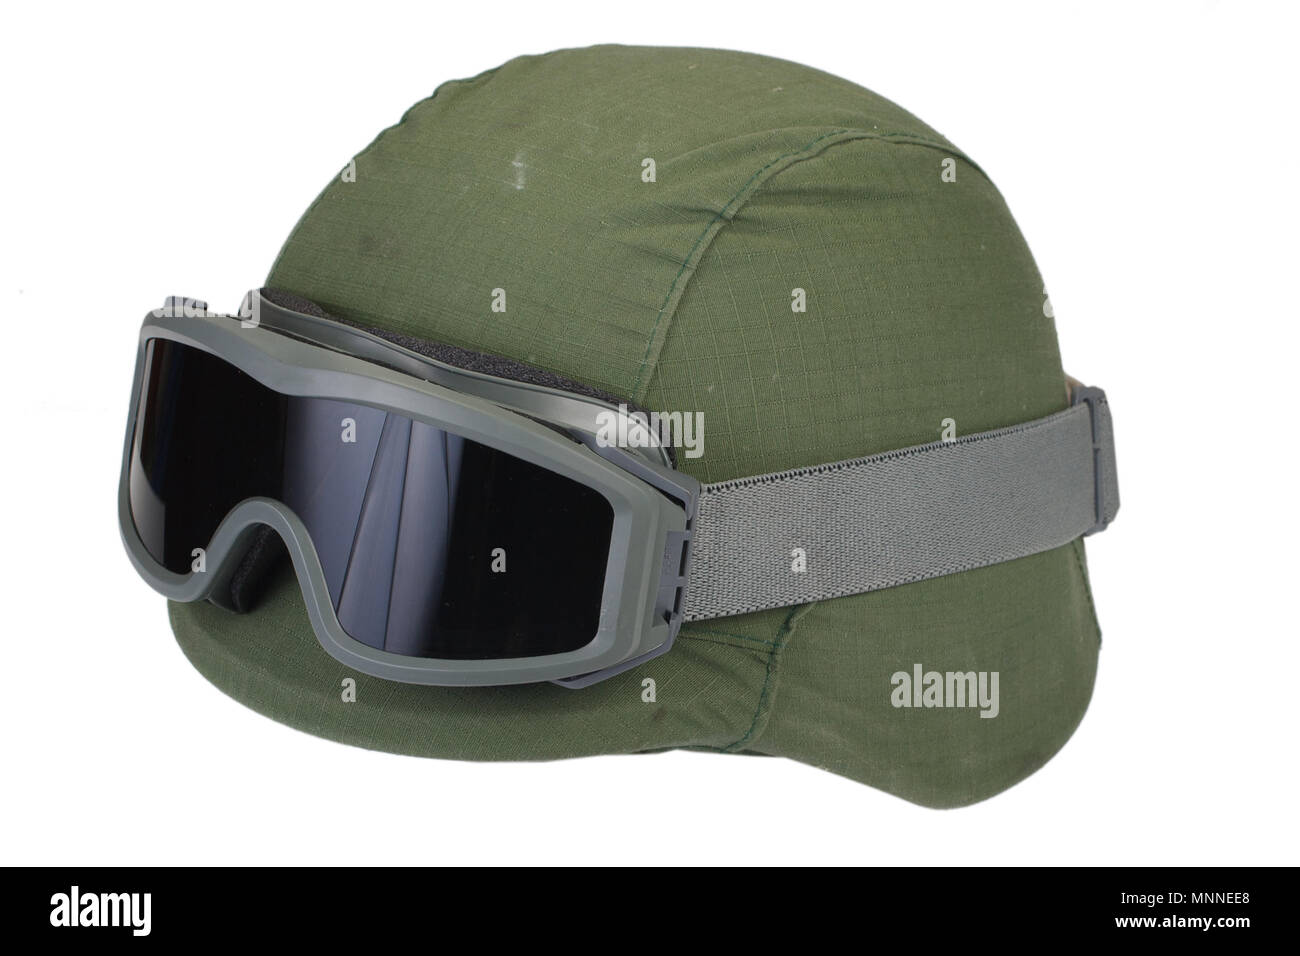 063dc259da4f33 kevlar helmet with a camouflage cover and protective goggles isolated on white  background